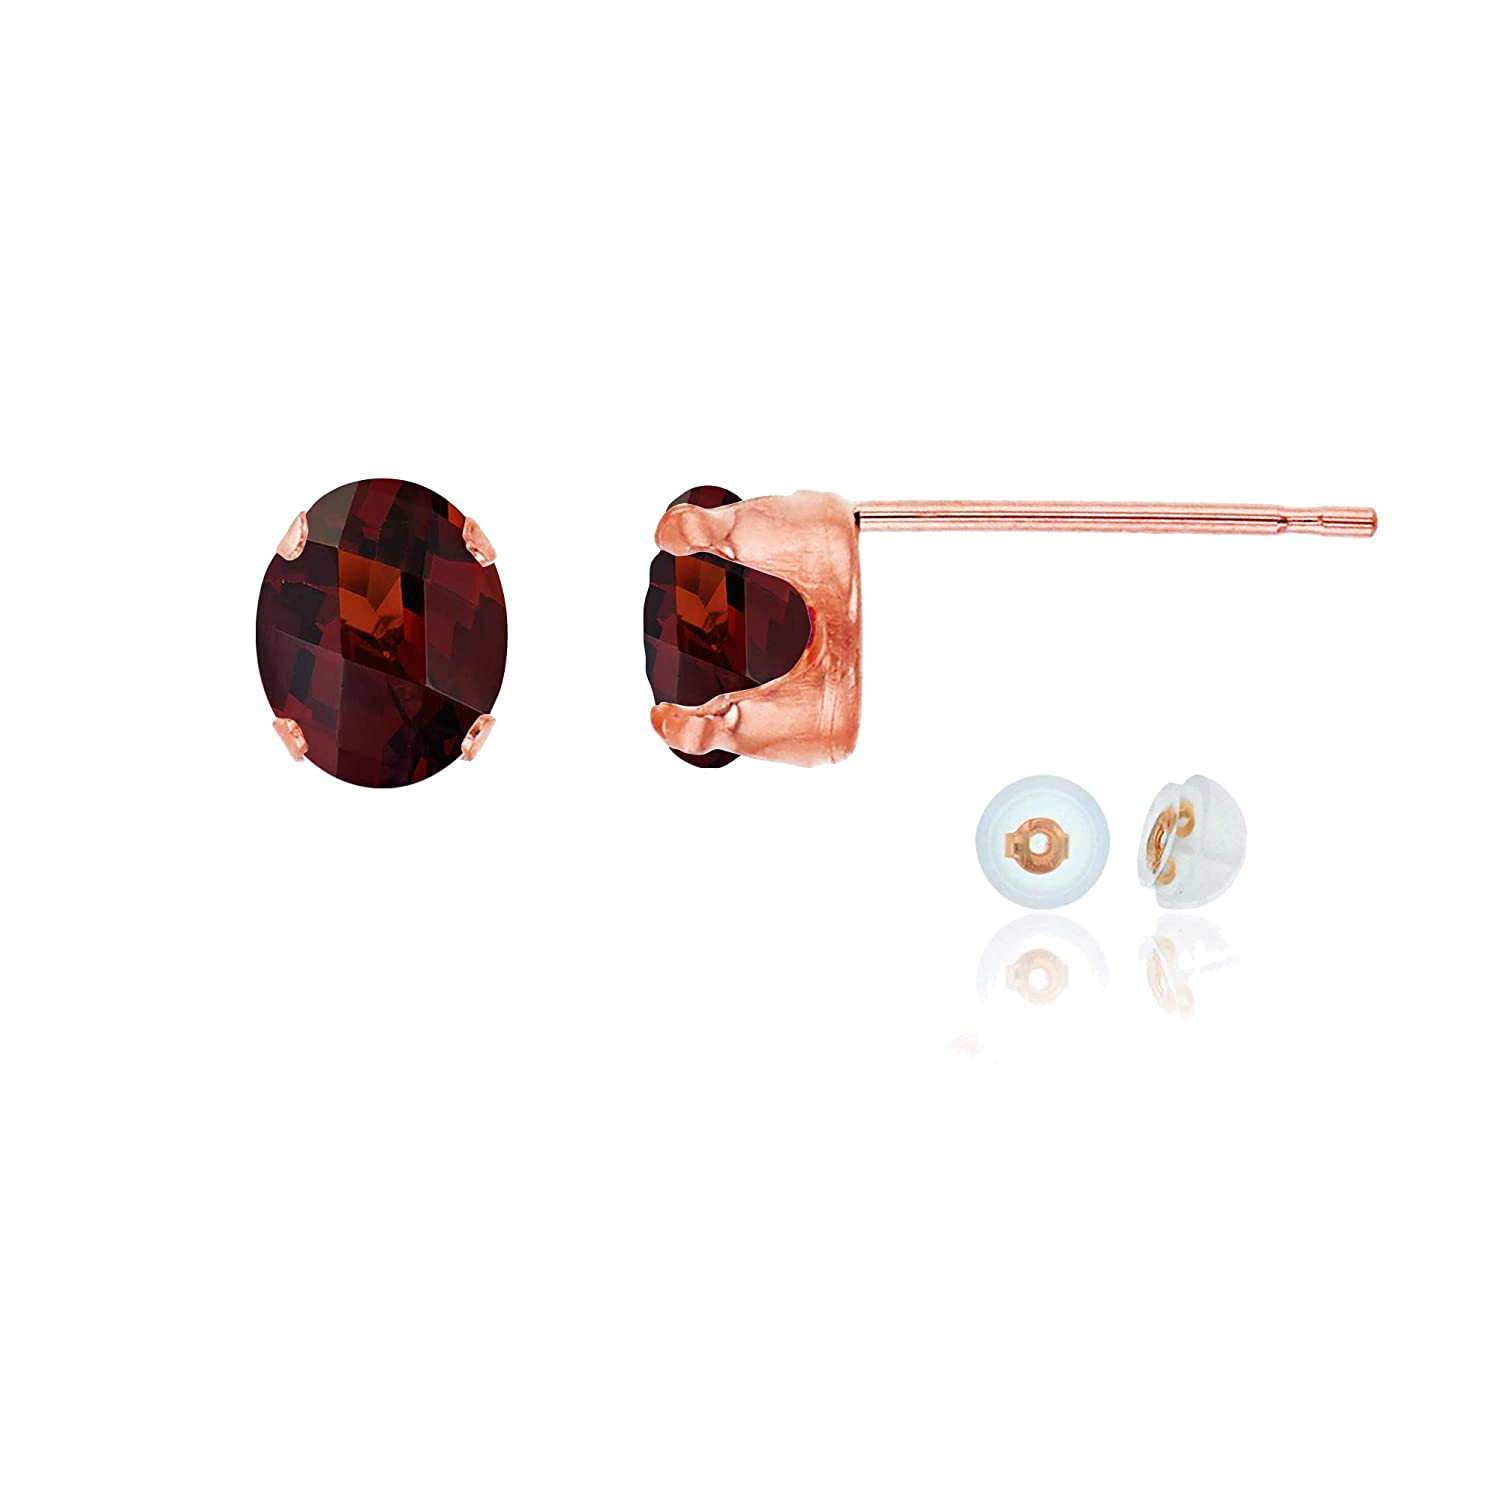 White or Rose Gold 7x5mm Oval Genuine Or Created Gemstone Birthstone Stud Earrings Solid 10K Yellow